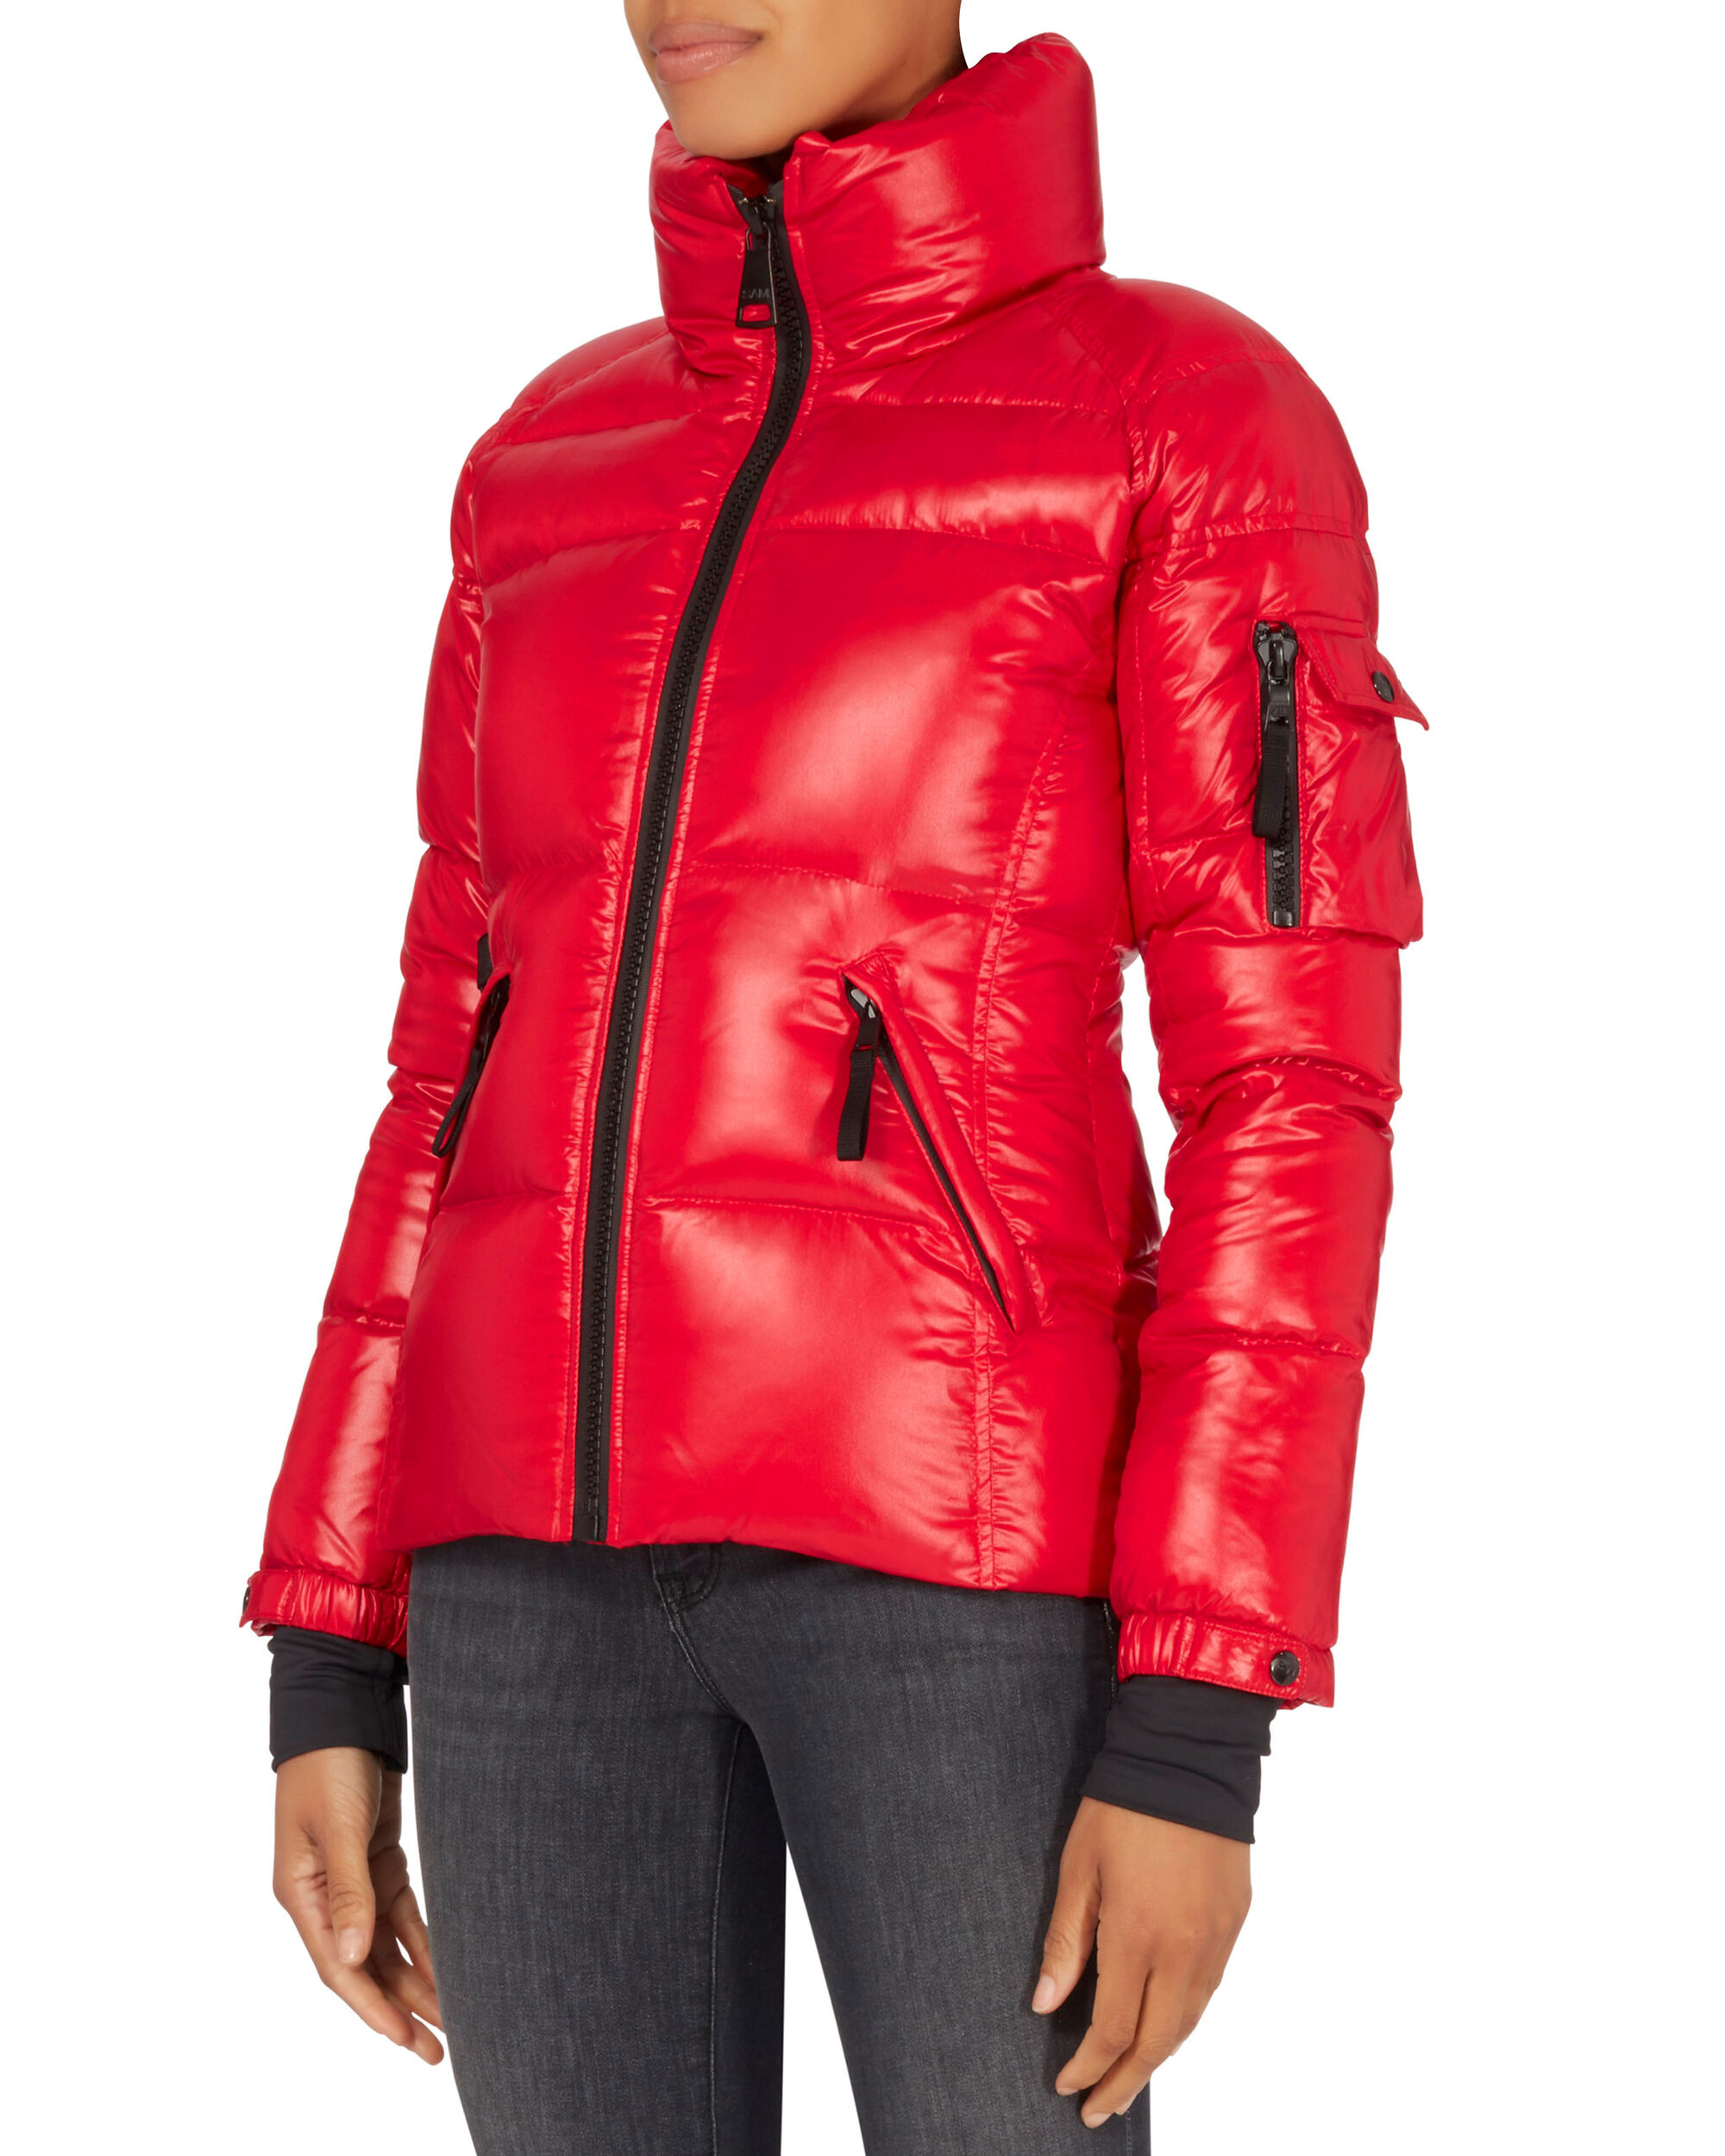 Candy Red Freestyle Puffer Jacket, RED, hi-res